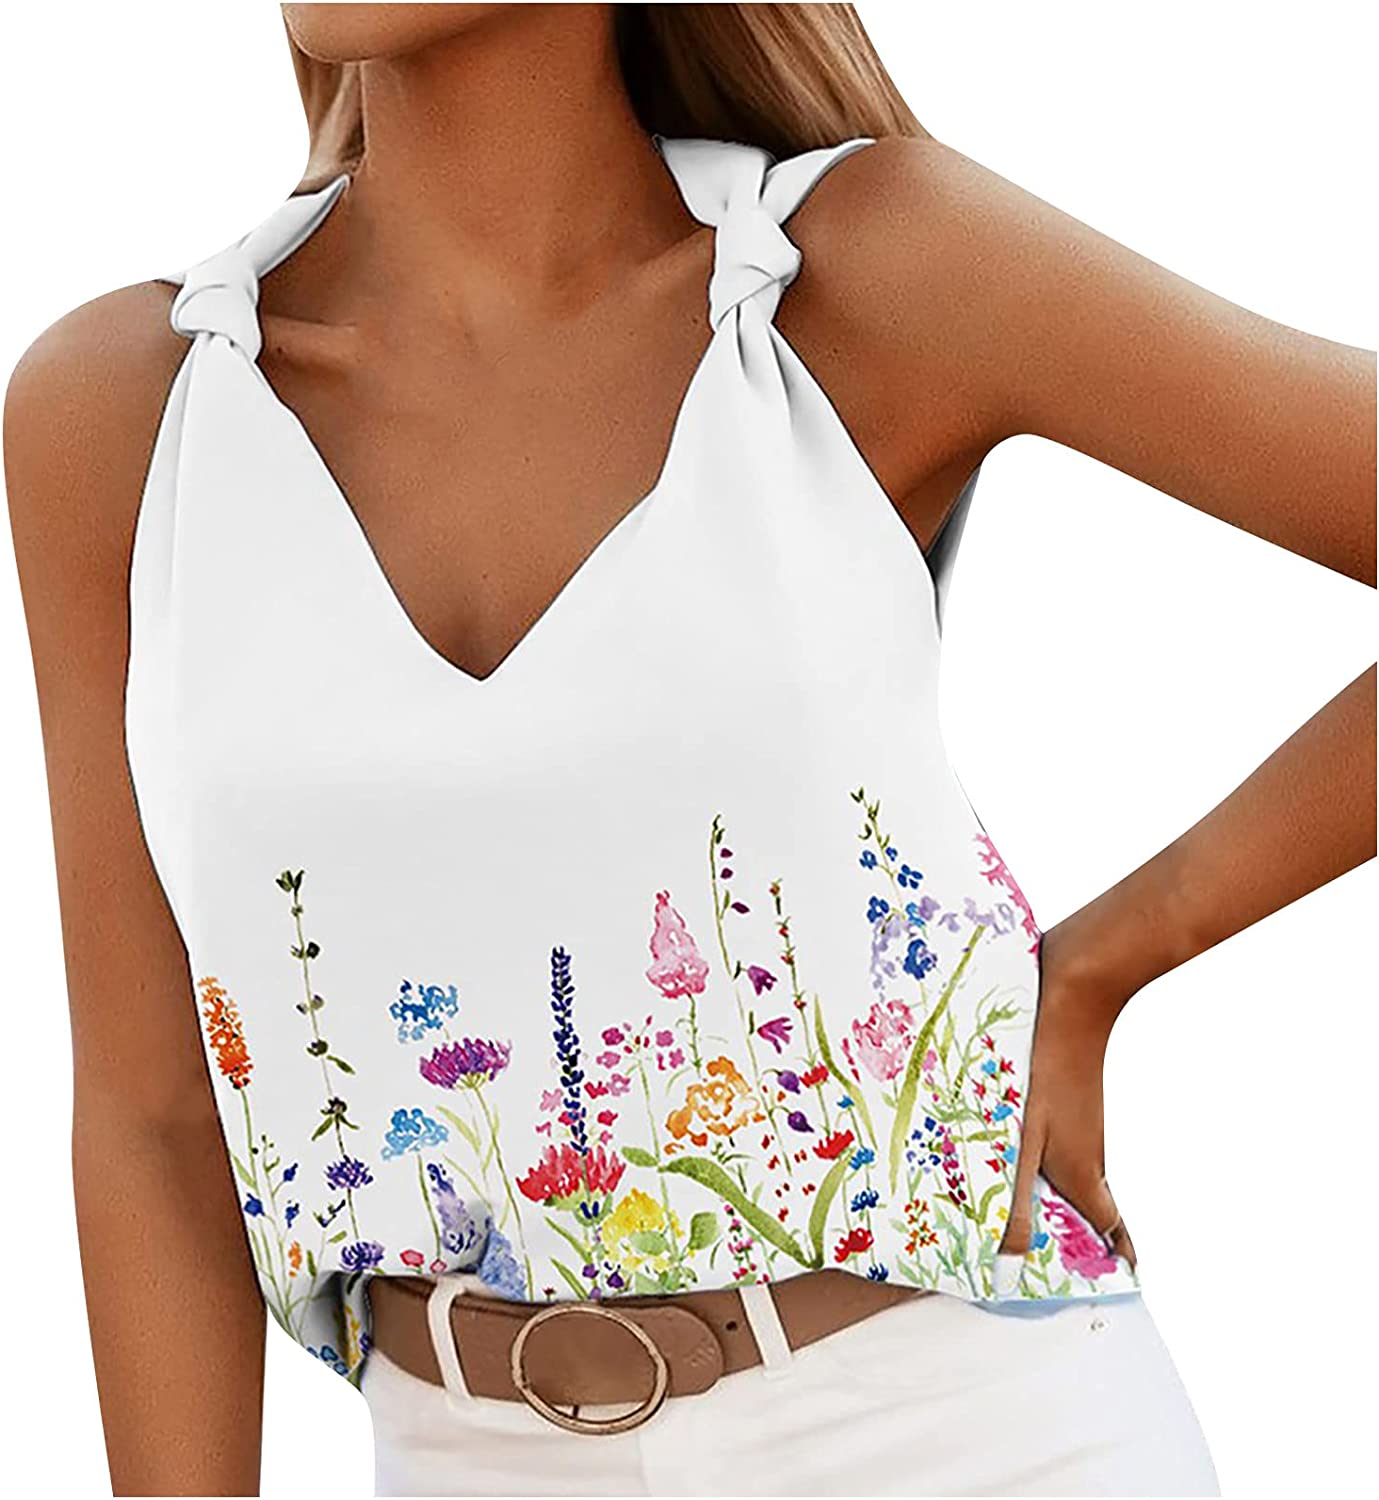 Meichang Womens Casual Knotted Tank Tops V-Neck Loose Vest Blouse Fashion Printed Pullover Ladies Cute Tees Shirt